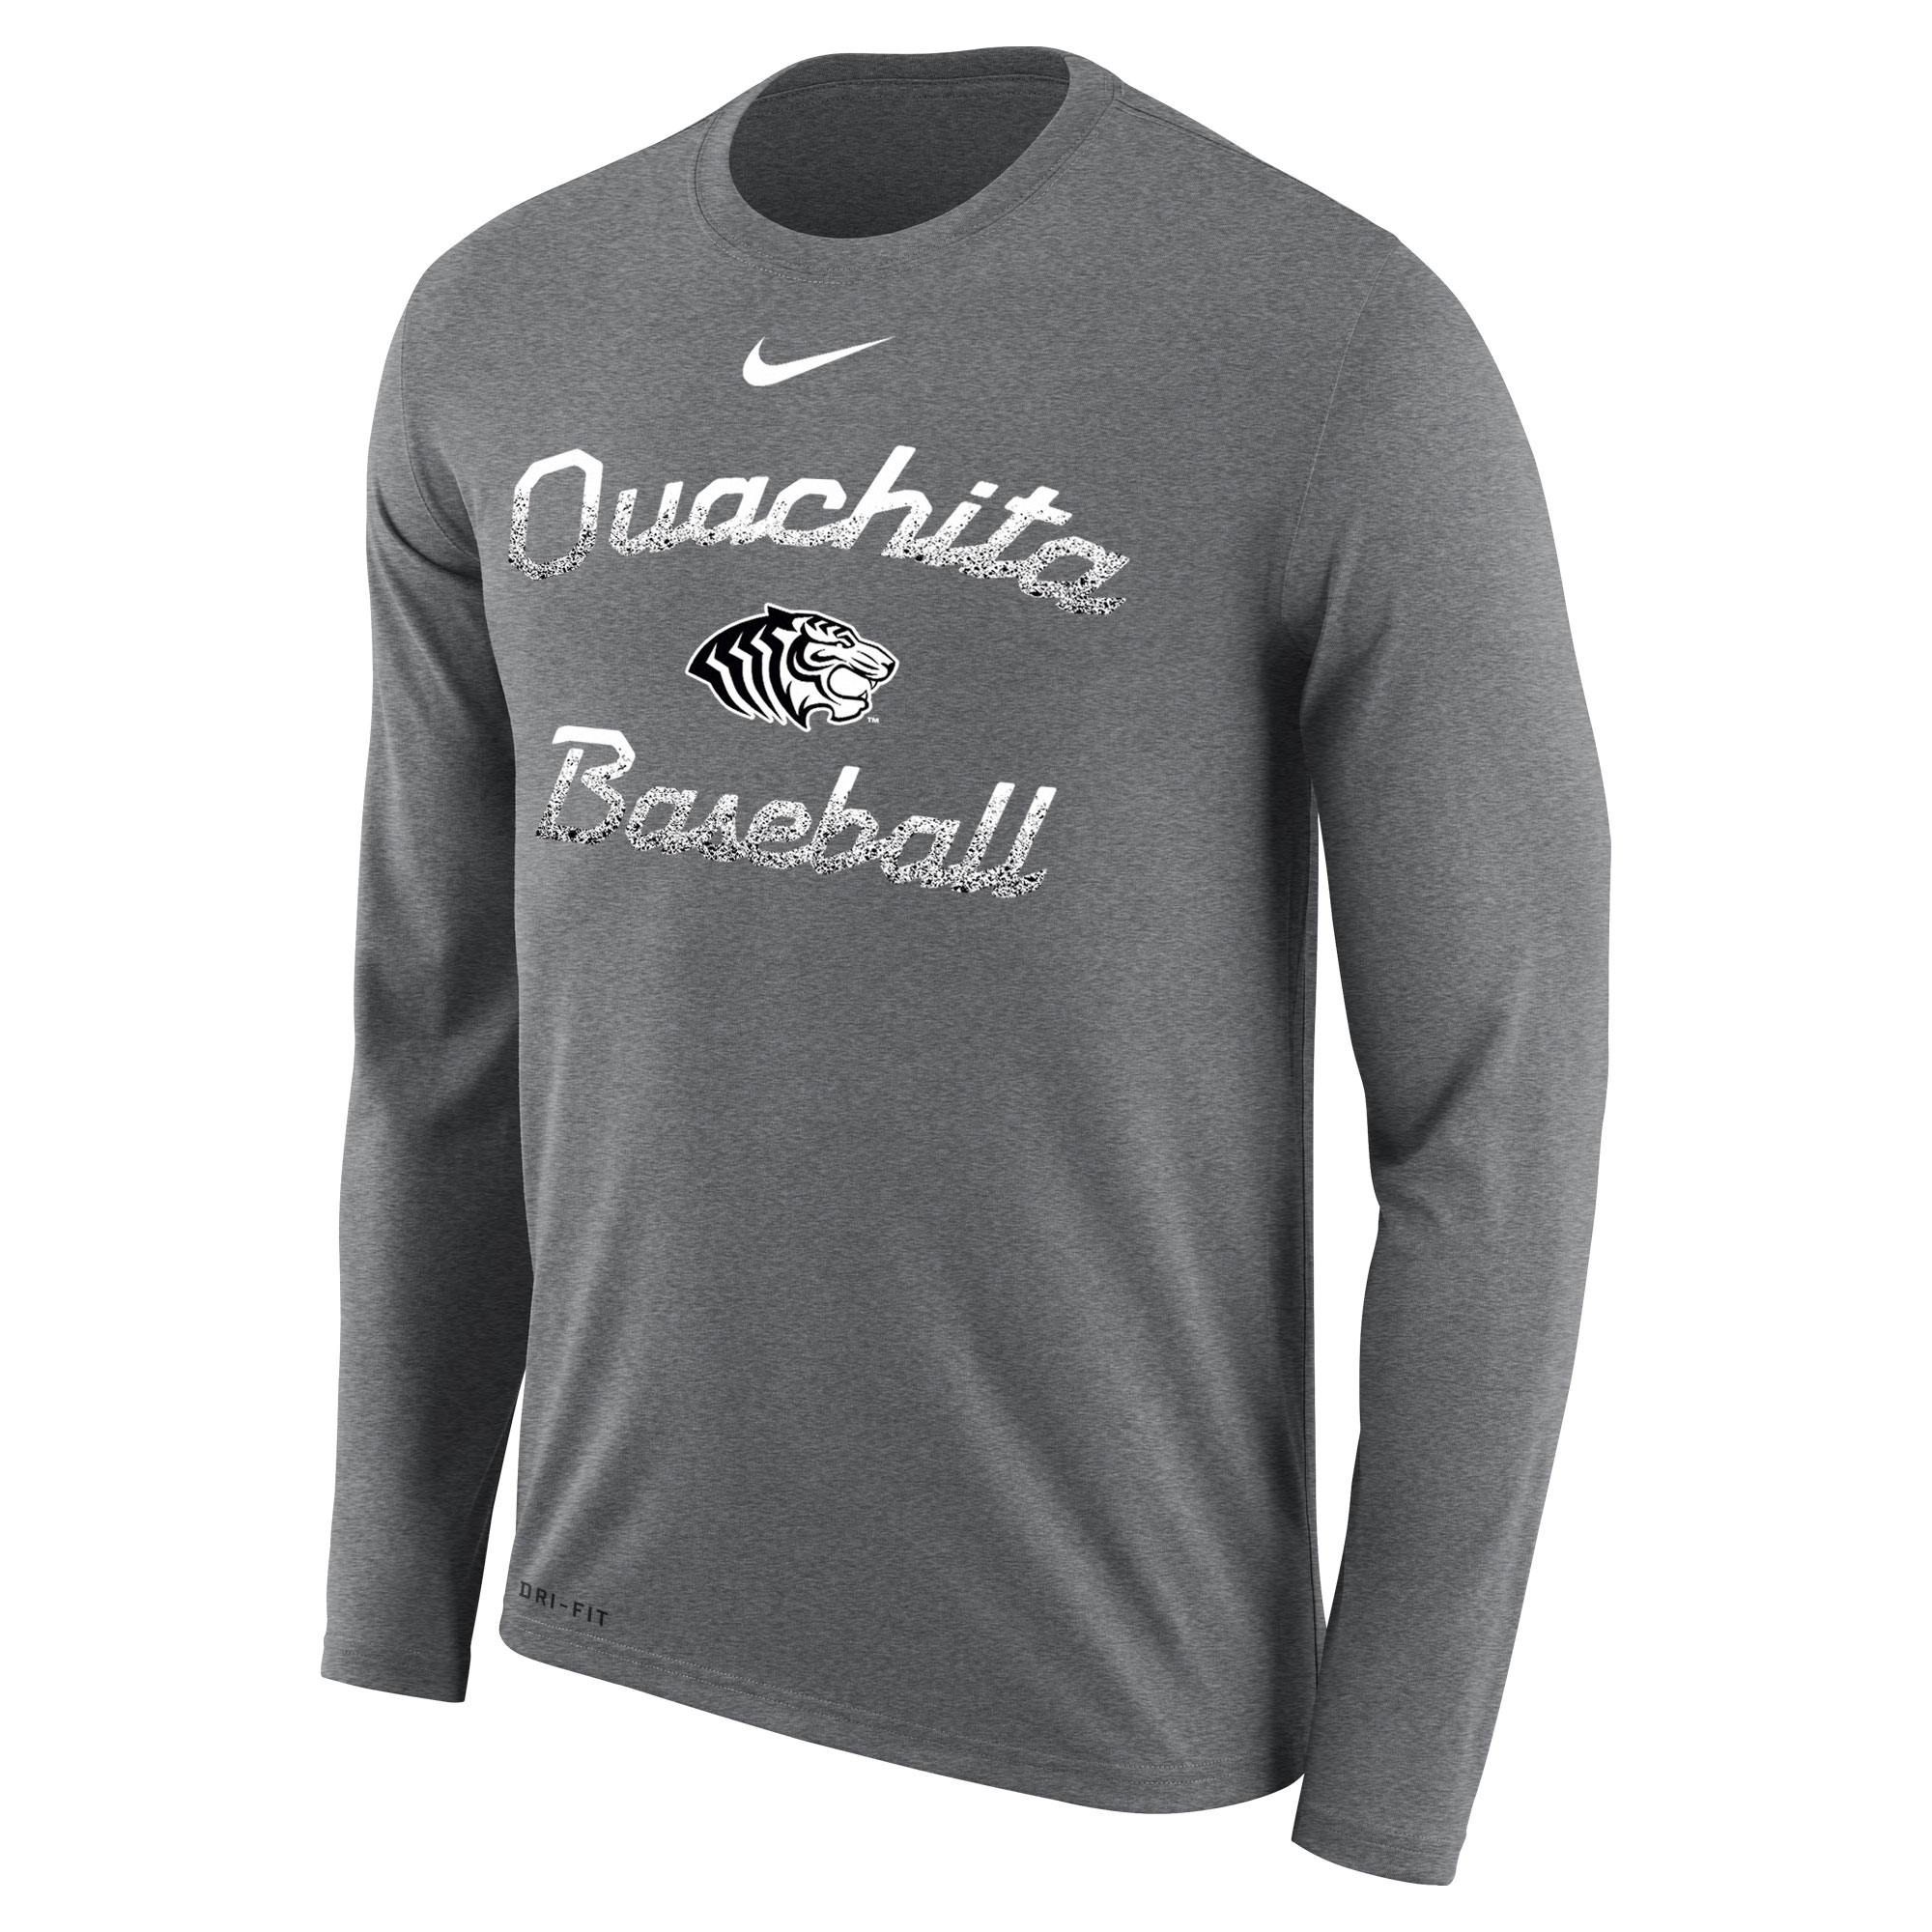 OUACHITA BASEBALL NIKE DRI-FIT LS TEE